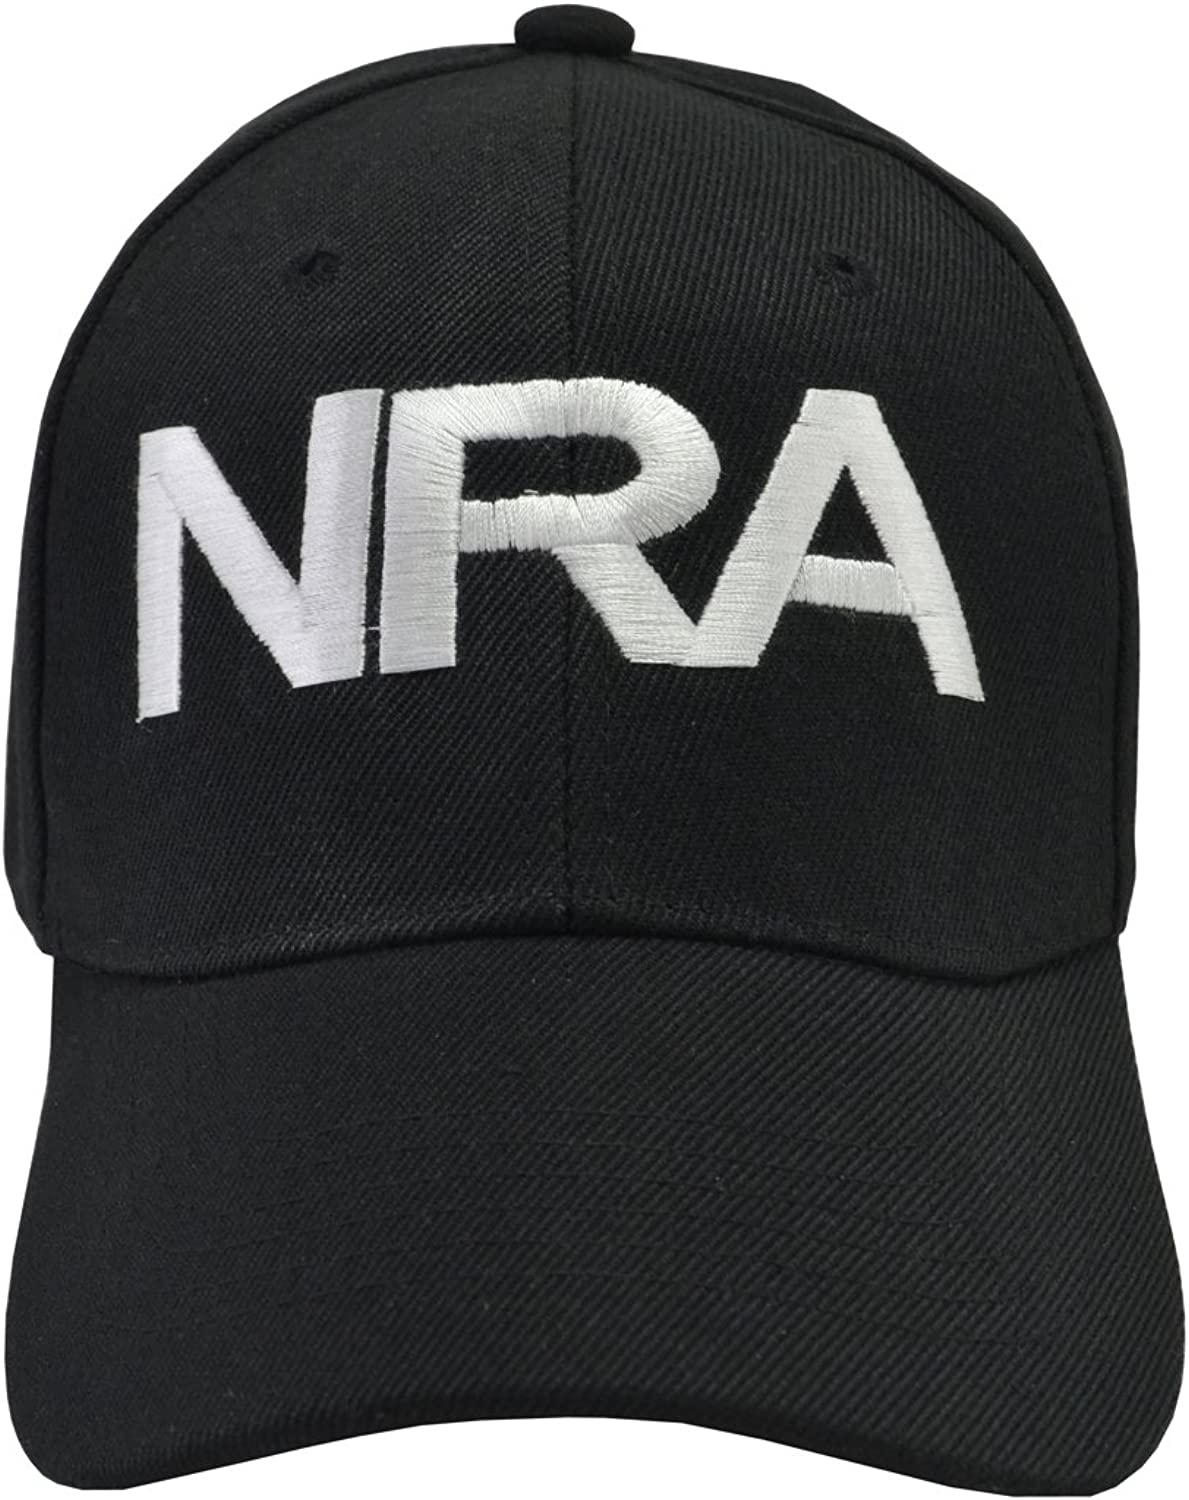 Incrediblegifts NRA Black Hat White Embroidered